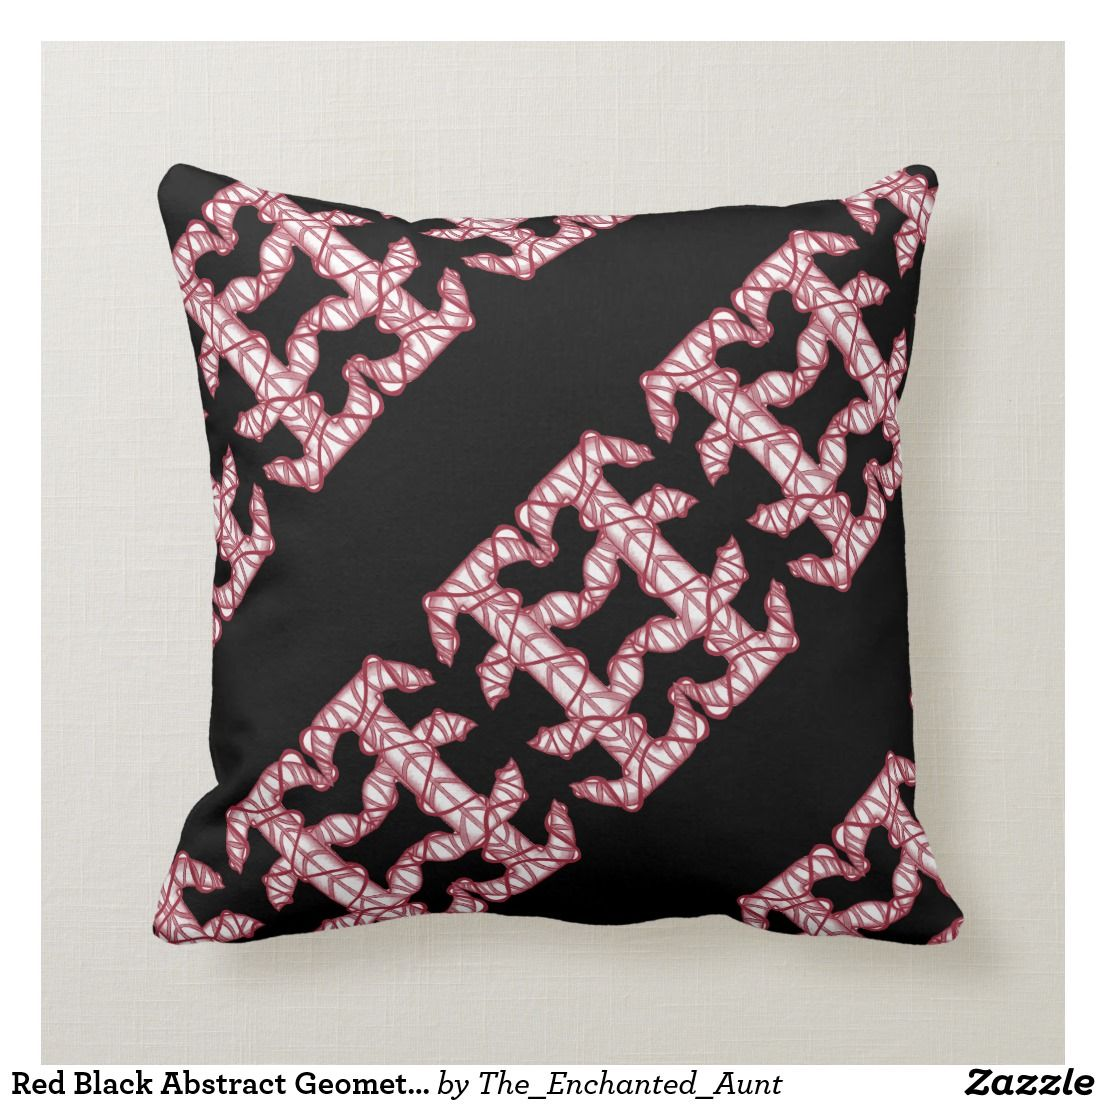 homedecor pillows #home #decor #homedecor Red Black Abstract Geometric White Pattern Pillow . Decorate your home with red throw pillows! These abstract red and black pillows are one of a kind patterns! Altered monogram letters have been created into cool geometric designs! Great for living spaces like living rooms or bedrooms! #throwpillows #homedecor #pillows #red #redhome #throwpillowsforbed #eleganthomes #pillowpattern #abstractart